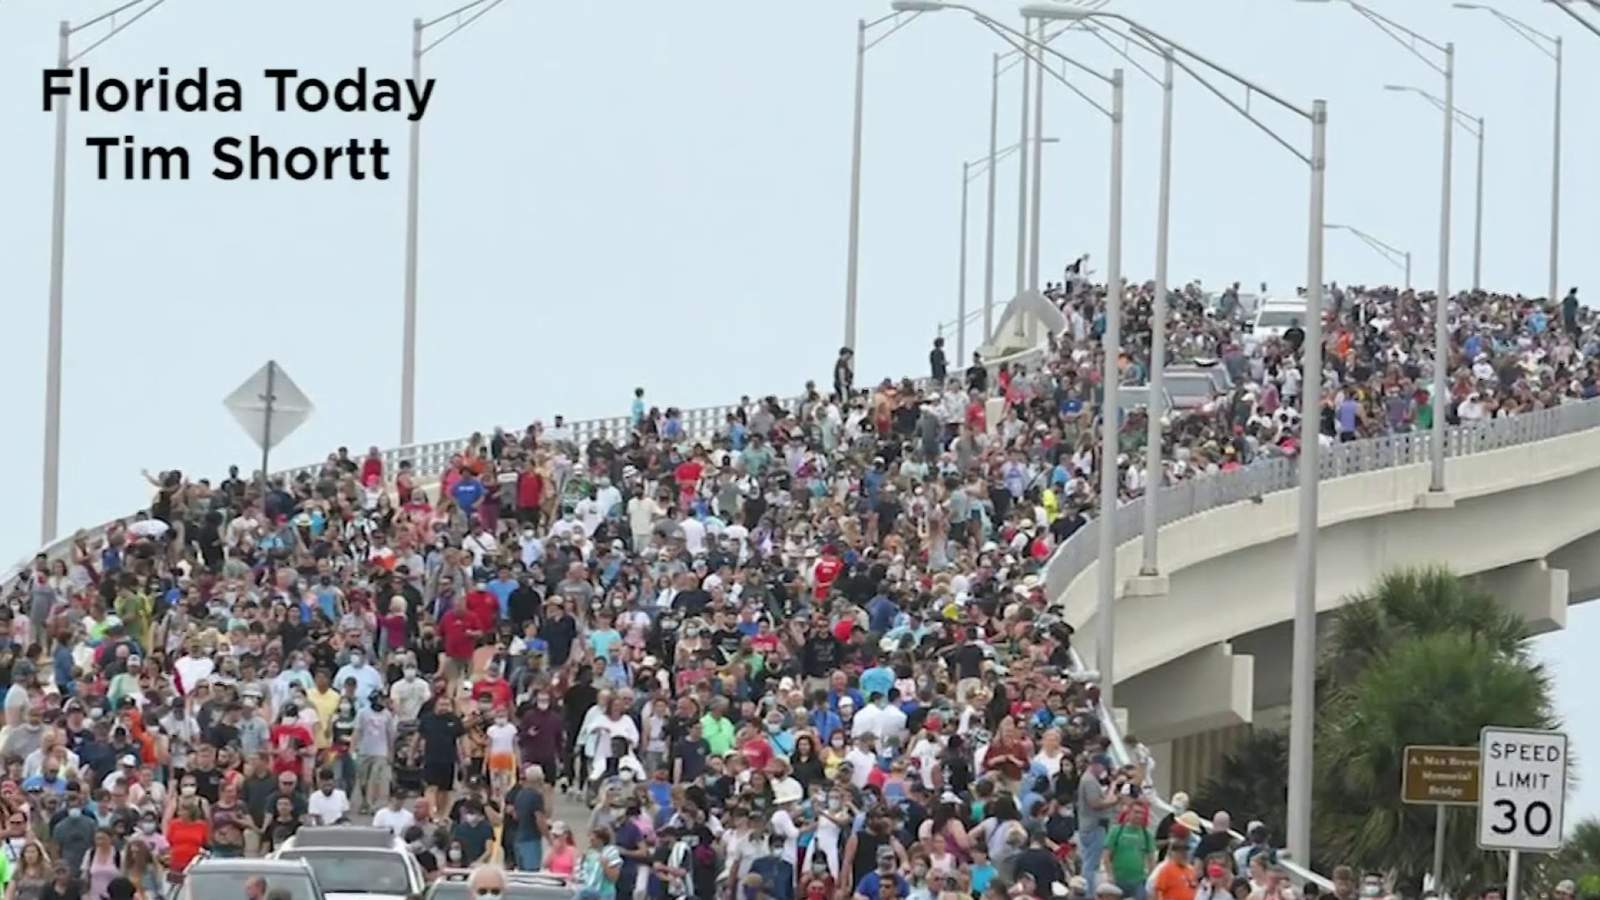 Massive crowds expected again at popular rocket launch viewing area in Titusville